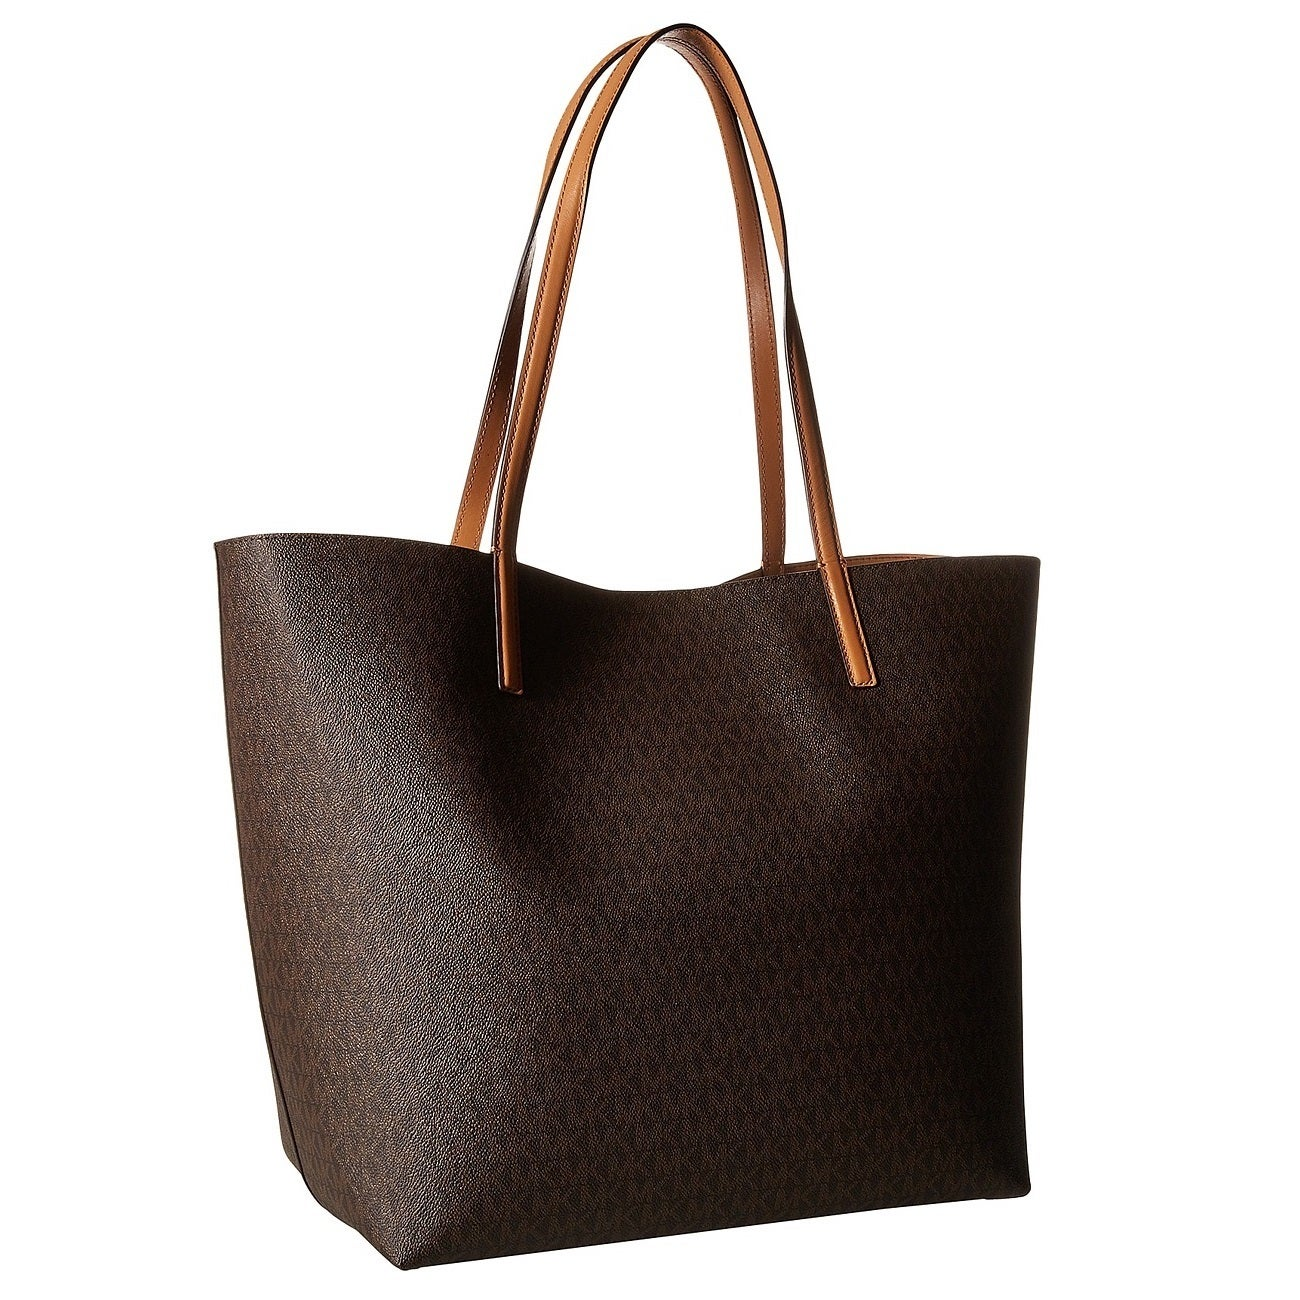 8935fae94e9f Shop Michael Kors Hayley Brown/ Peanut Large Logo Tote Bag - Free Shipping  Today - Overstock - 12876179